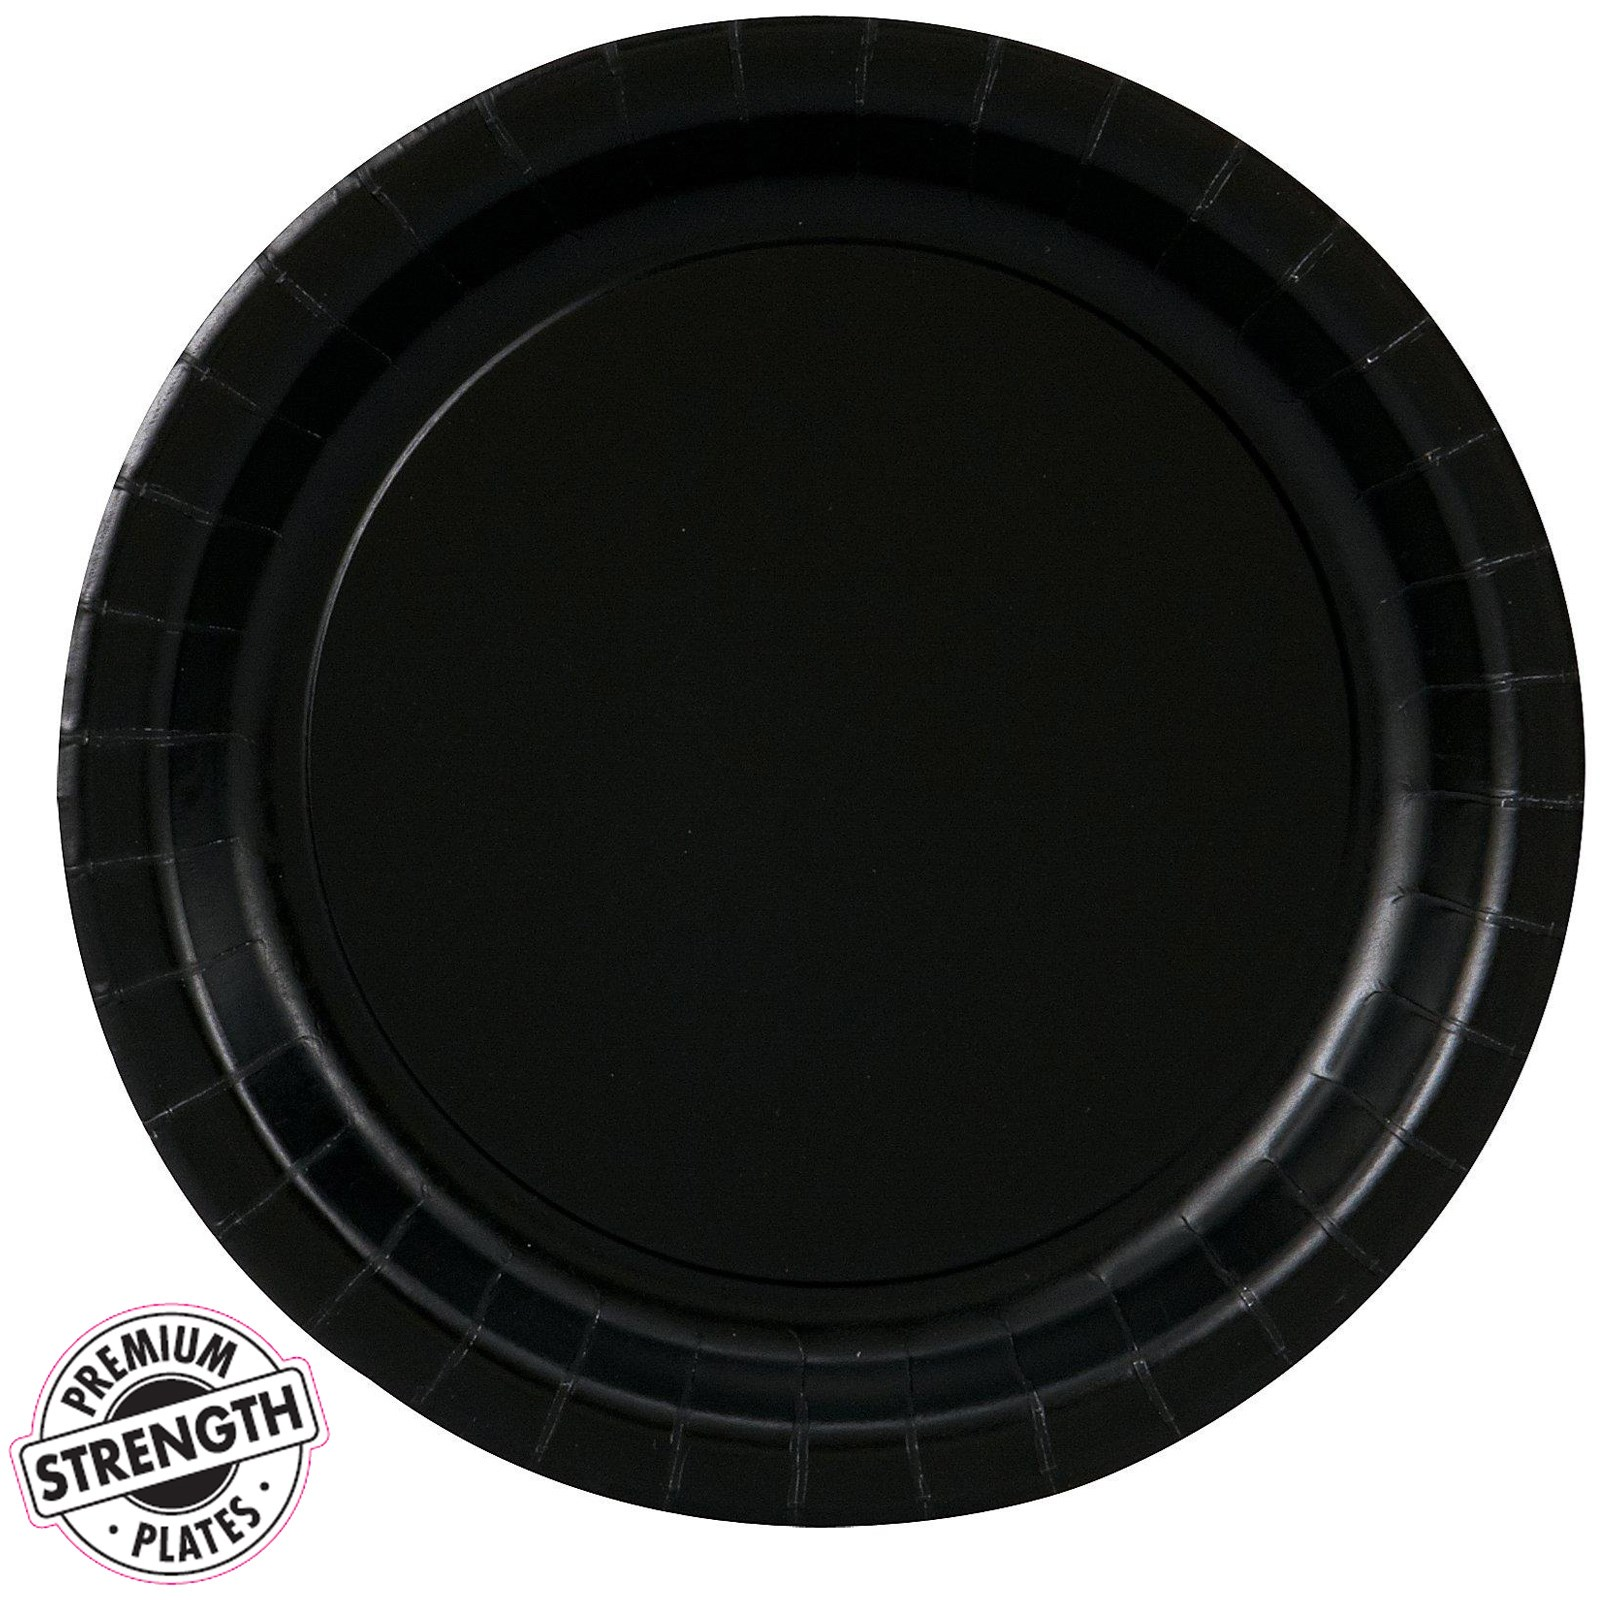 black velvet black dessert plates 24 count. Black Bedroom Furniture Sets. Home Design Ideas